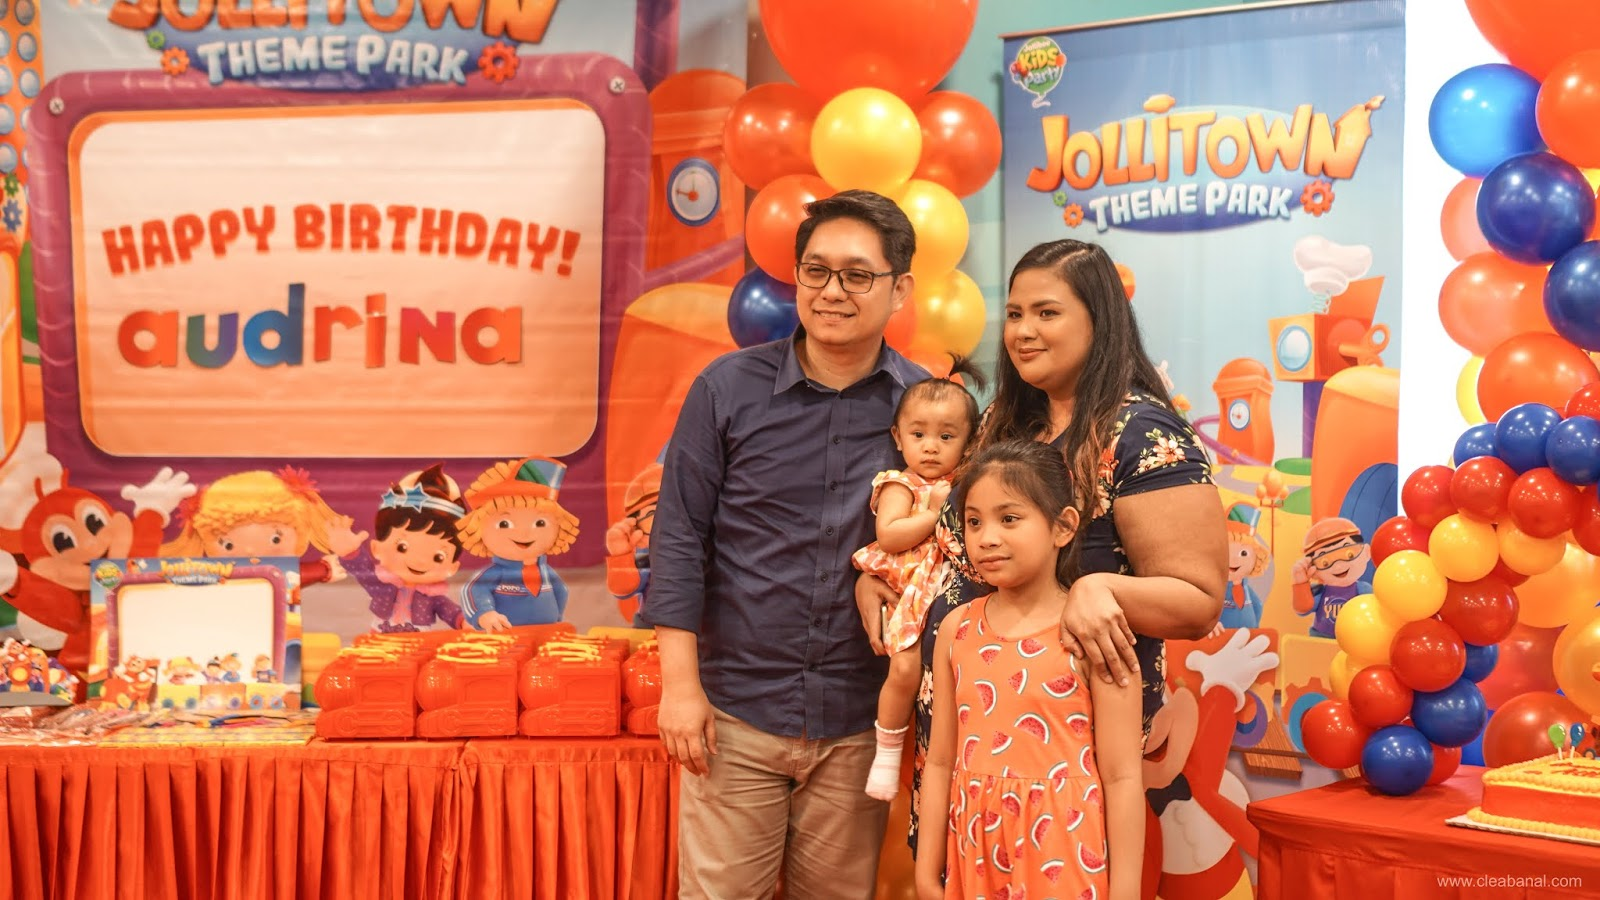 Jollibee Kids Party Jollitown Theme Park Experience